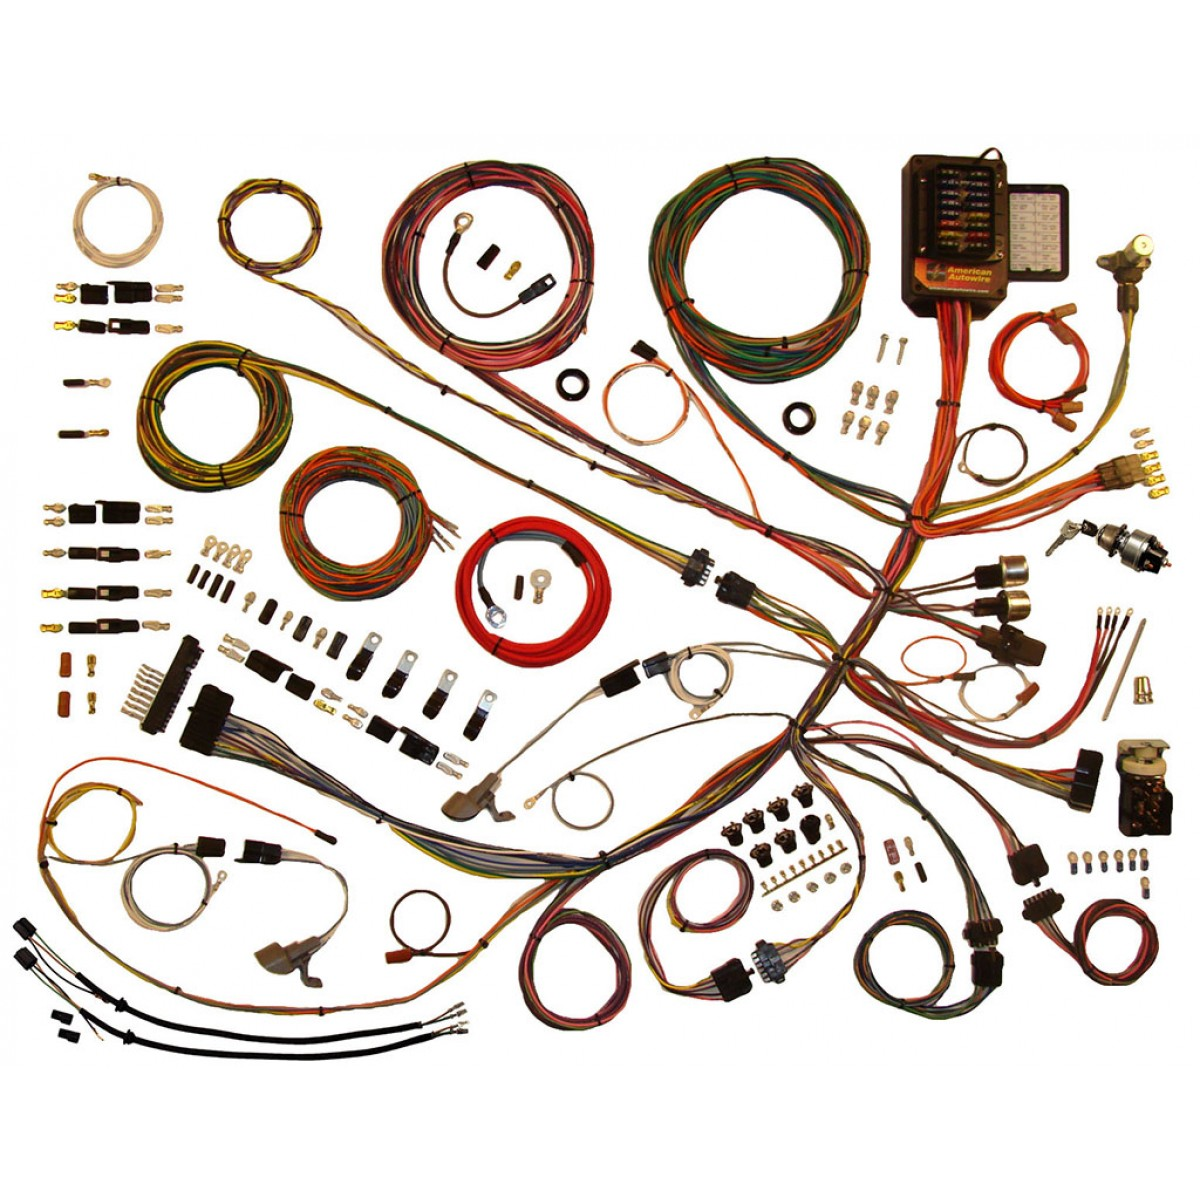 complete wiring harness kit 1953 1956 ford f100 part 510303 ford truck wiring harness f100 1953 1956 ford f100 wiring harness complete wiring harness kit ford wiring harness at soozxer.org